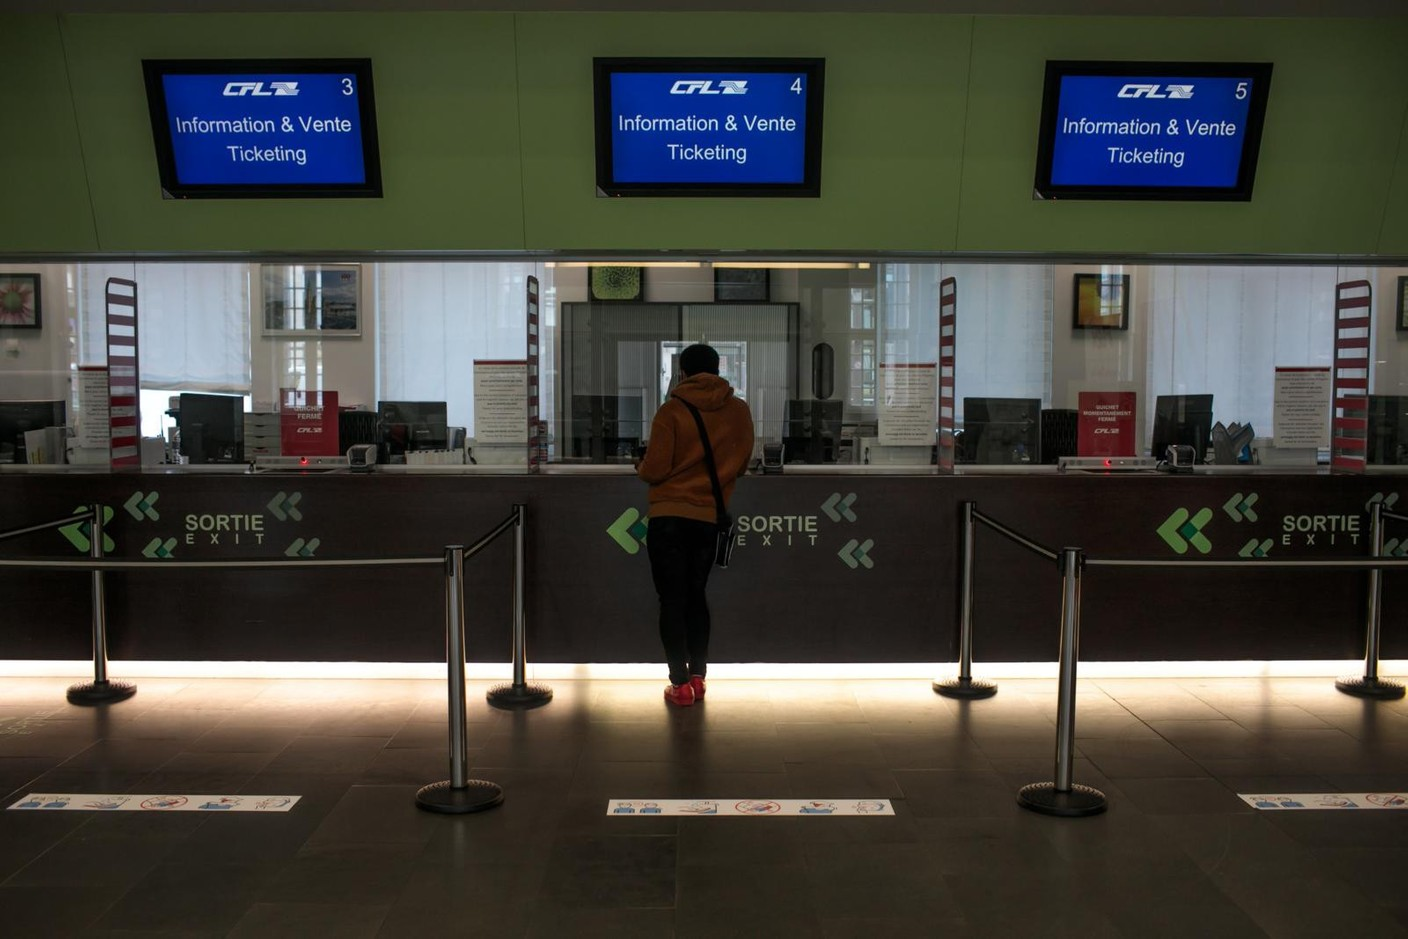 Library picture: A traveller is seen at the CFL ticket counter inside the central train station, May 2020. Photo: Matic Zorman